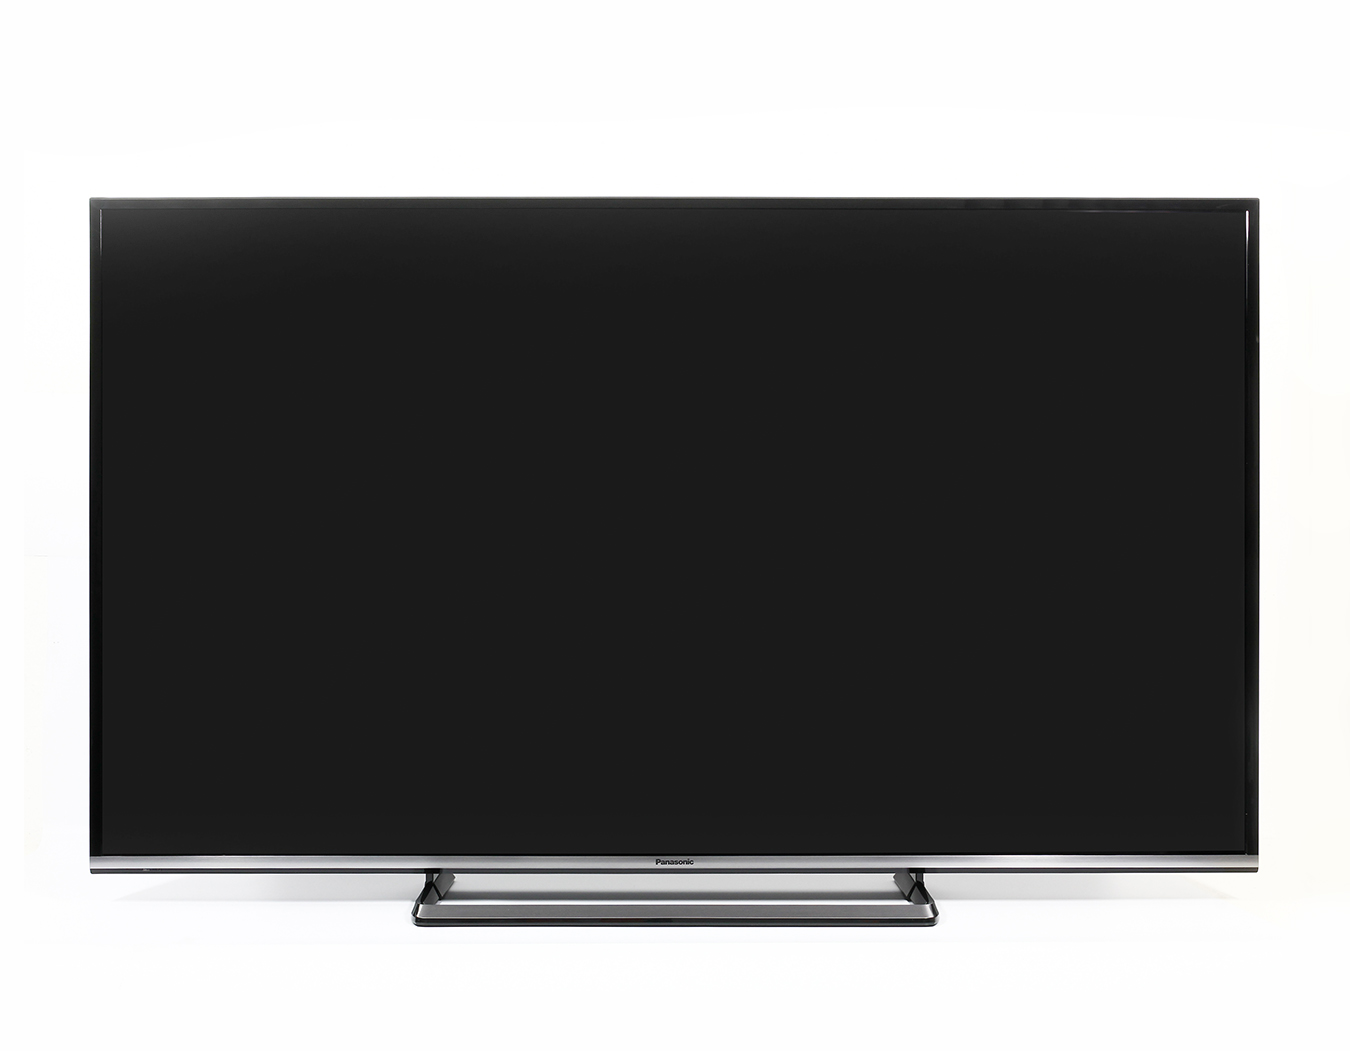 tv 55 zoll top lg uhv uhdtv zoll with tv 55 zoll sony kd xe cm zoll fernseher k ultra hd with. Black Bedroom Furniture Sets. Home Design Ideas